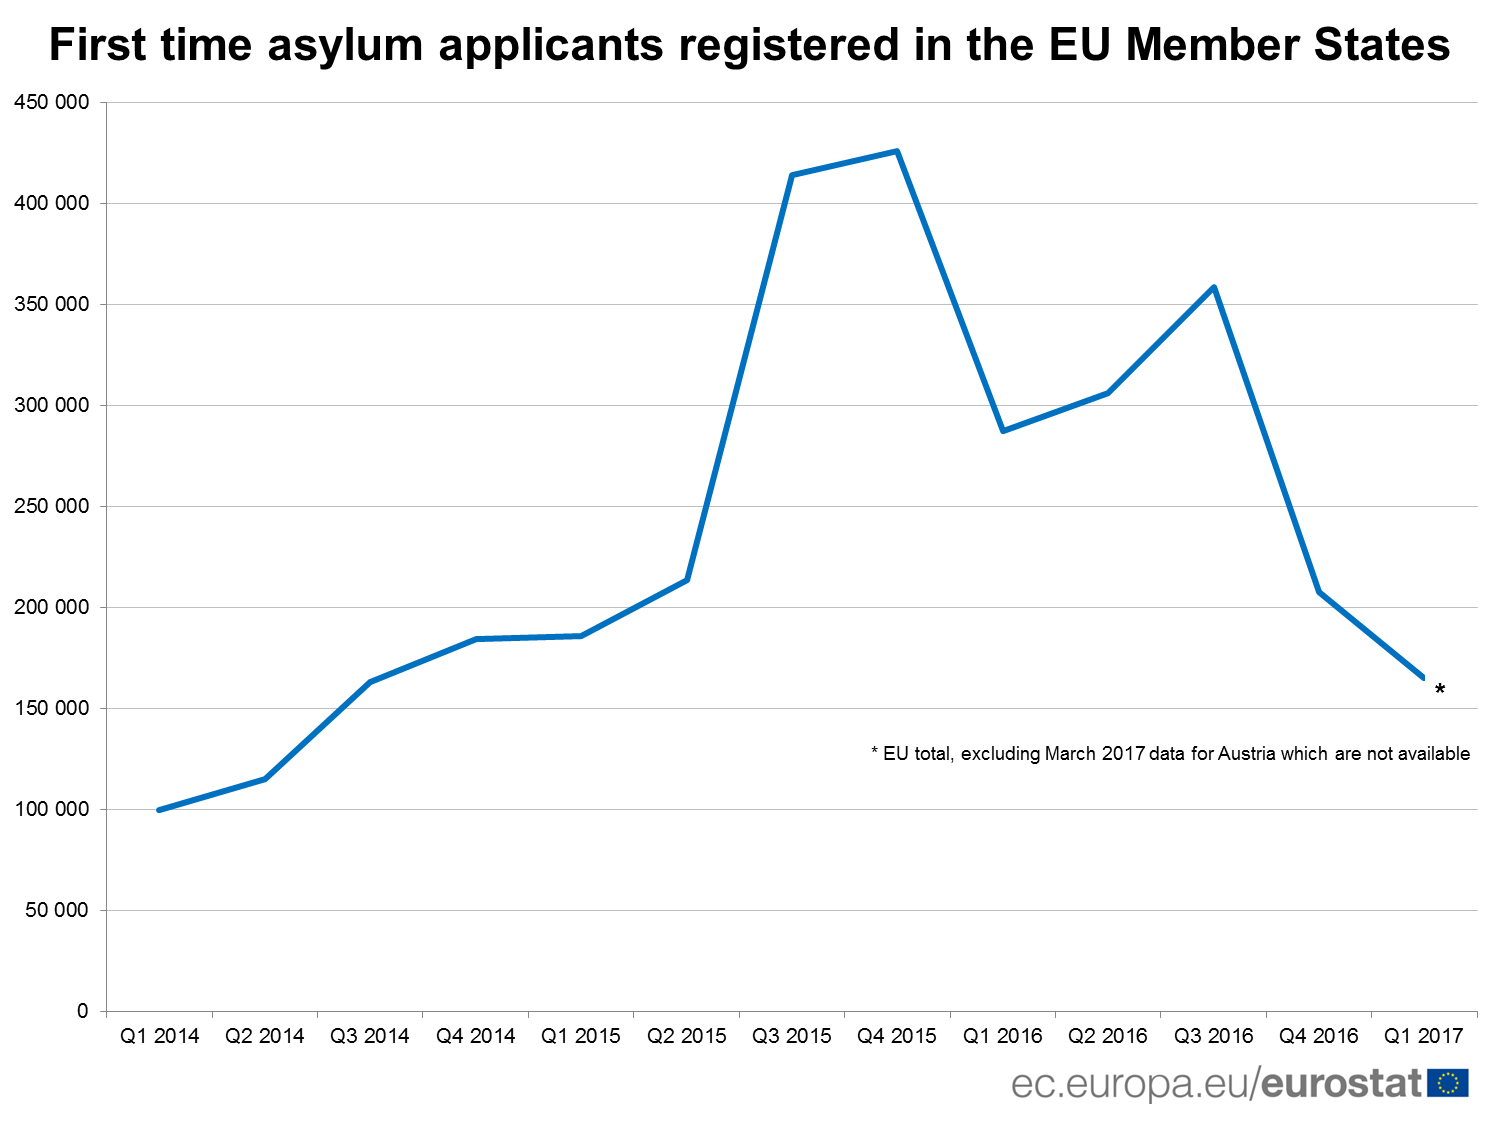 First time ayslum applicants registered in the EU Member States